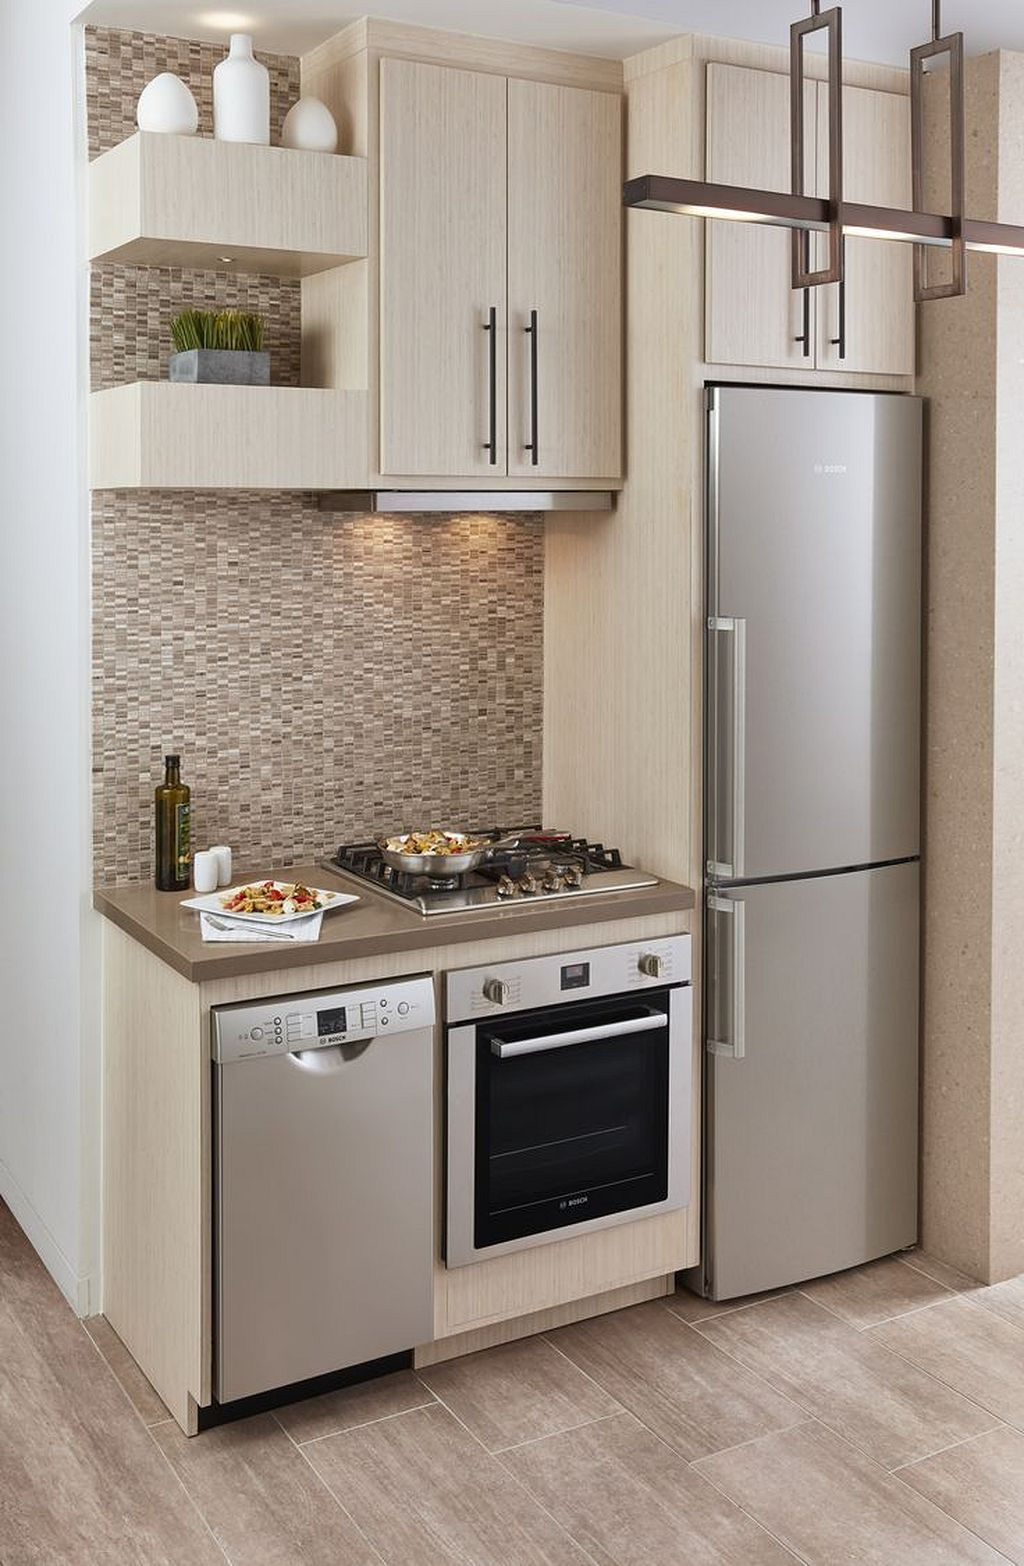 As consumer awareness has grown so too has the demand for premium appliances designed to accommodate these spaces were proud to offer a full